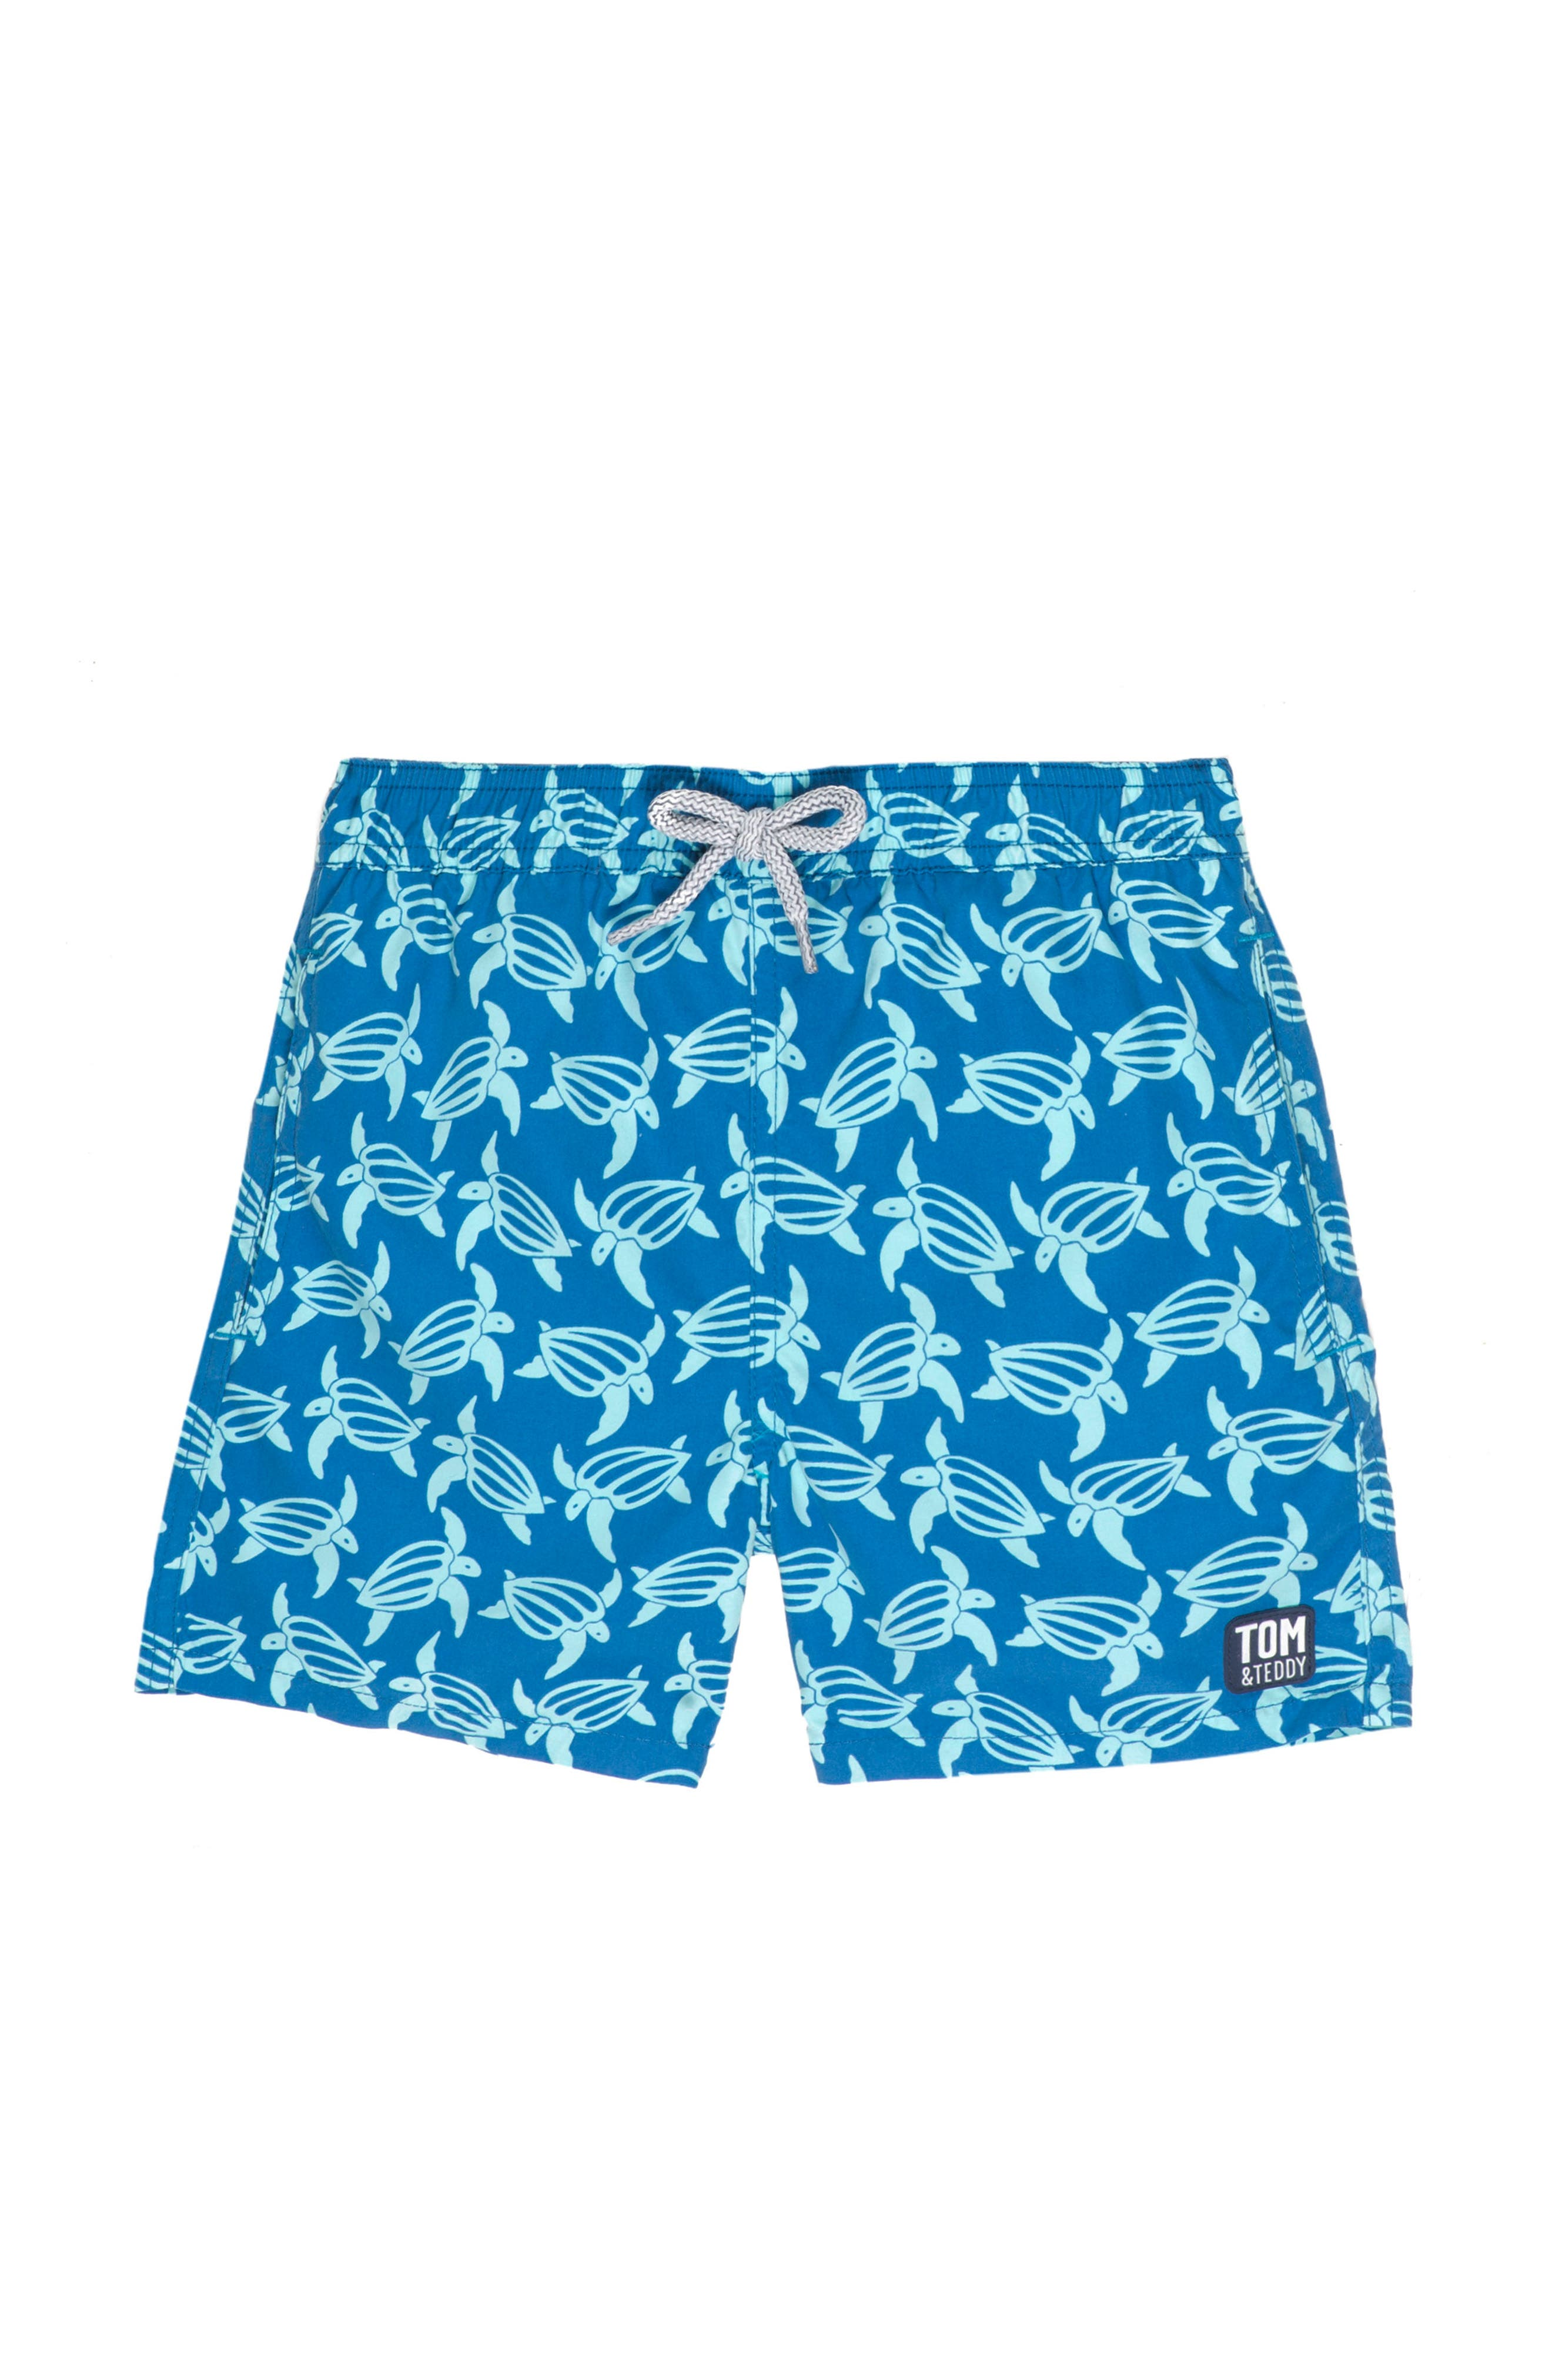 Turtle Swim Trunks,                         Main,                         color, Mid Blue/ Sky